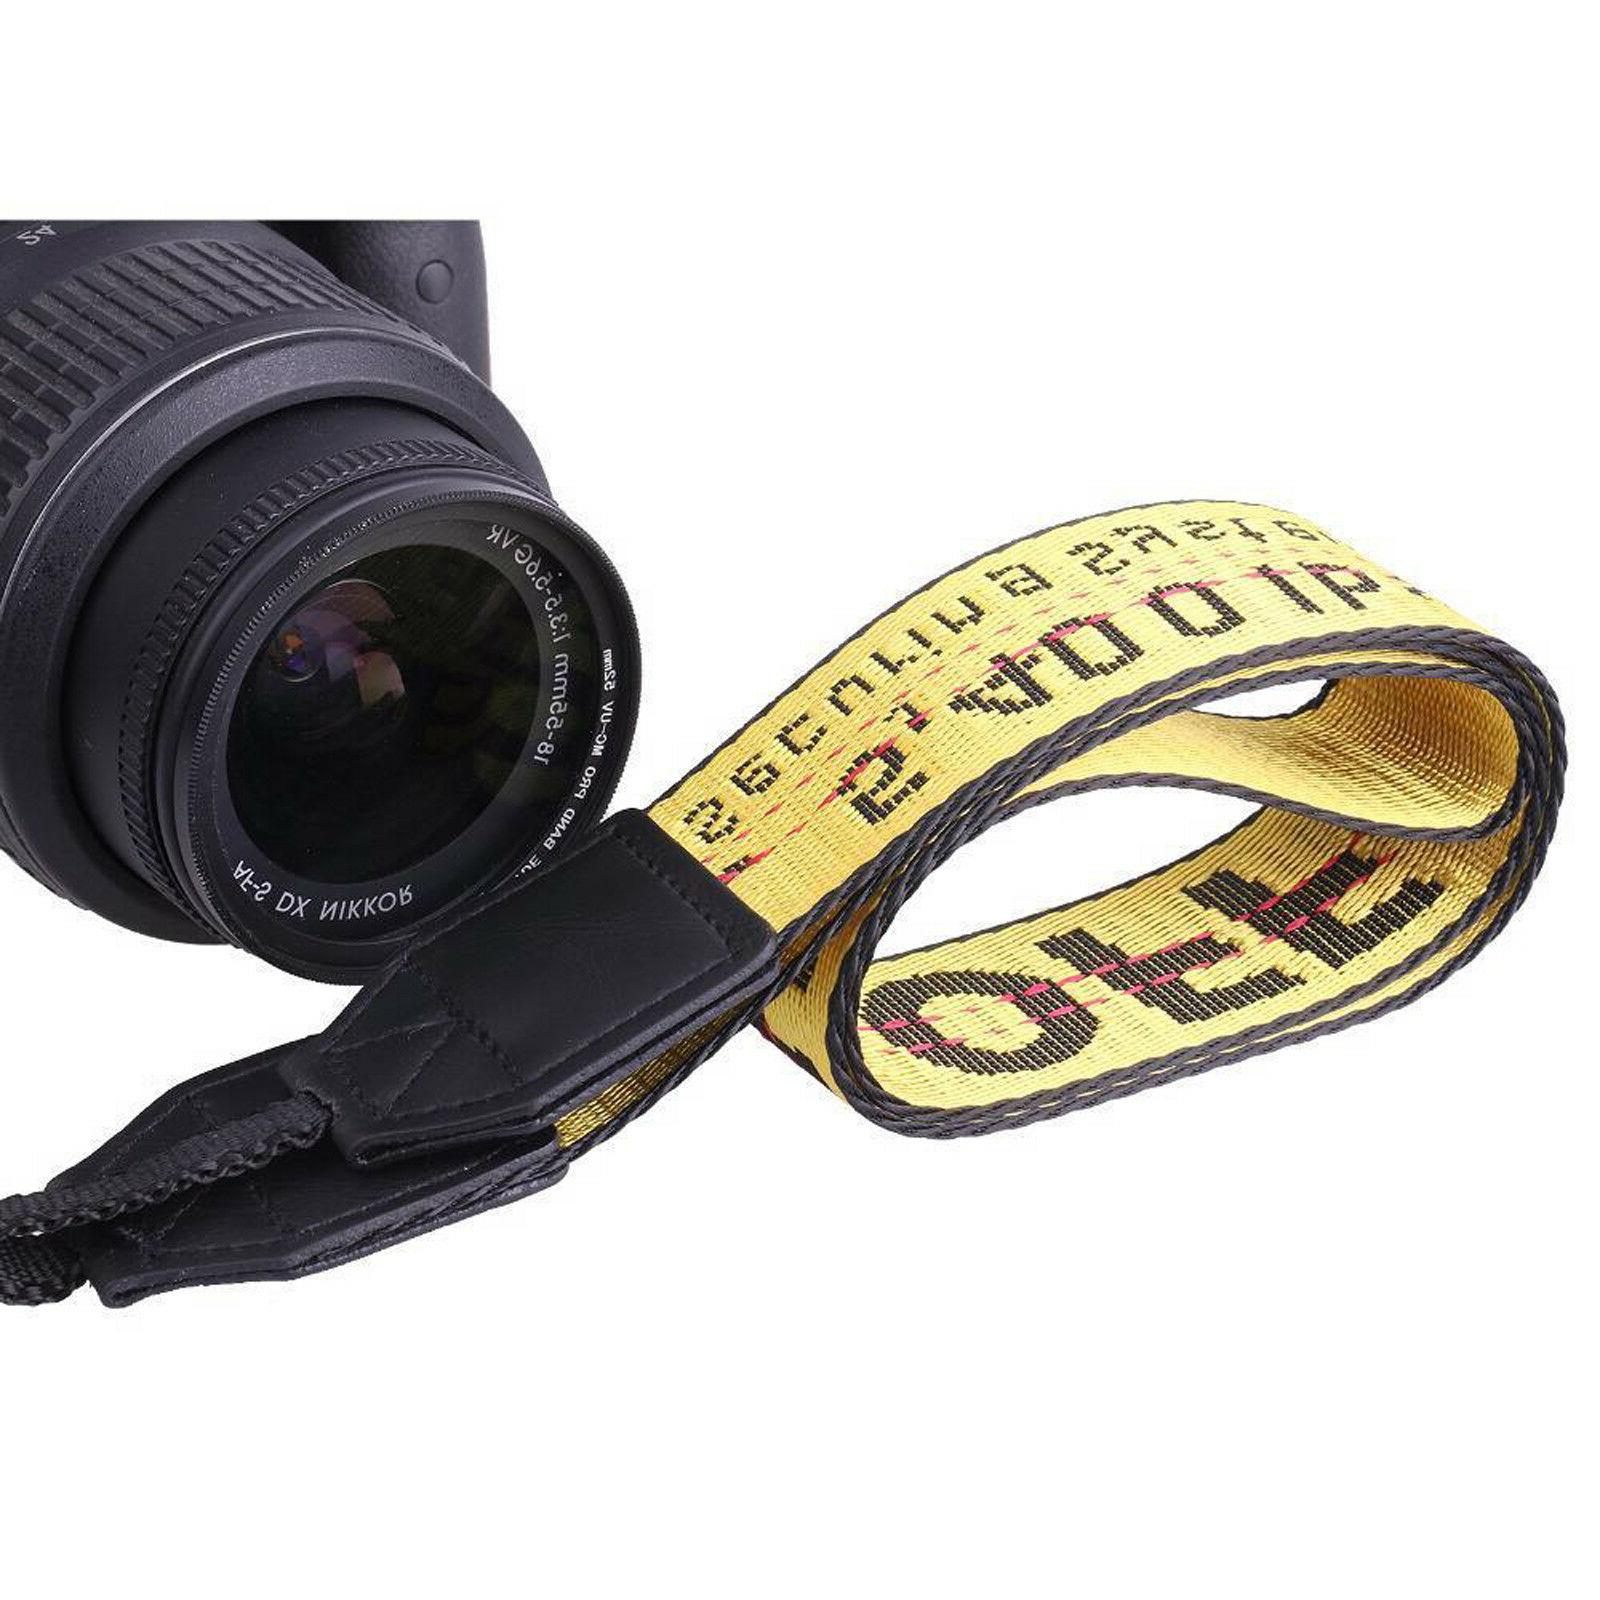 OFF WHITE Industrial Strap Yellow Fit any DSLR Camera